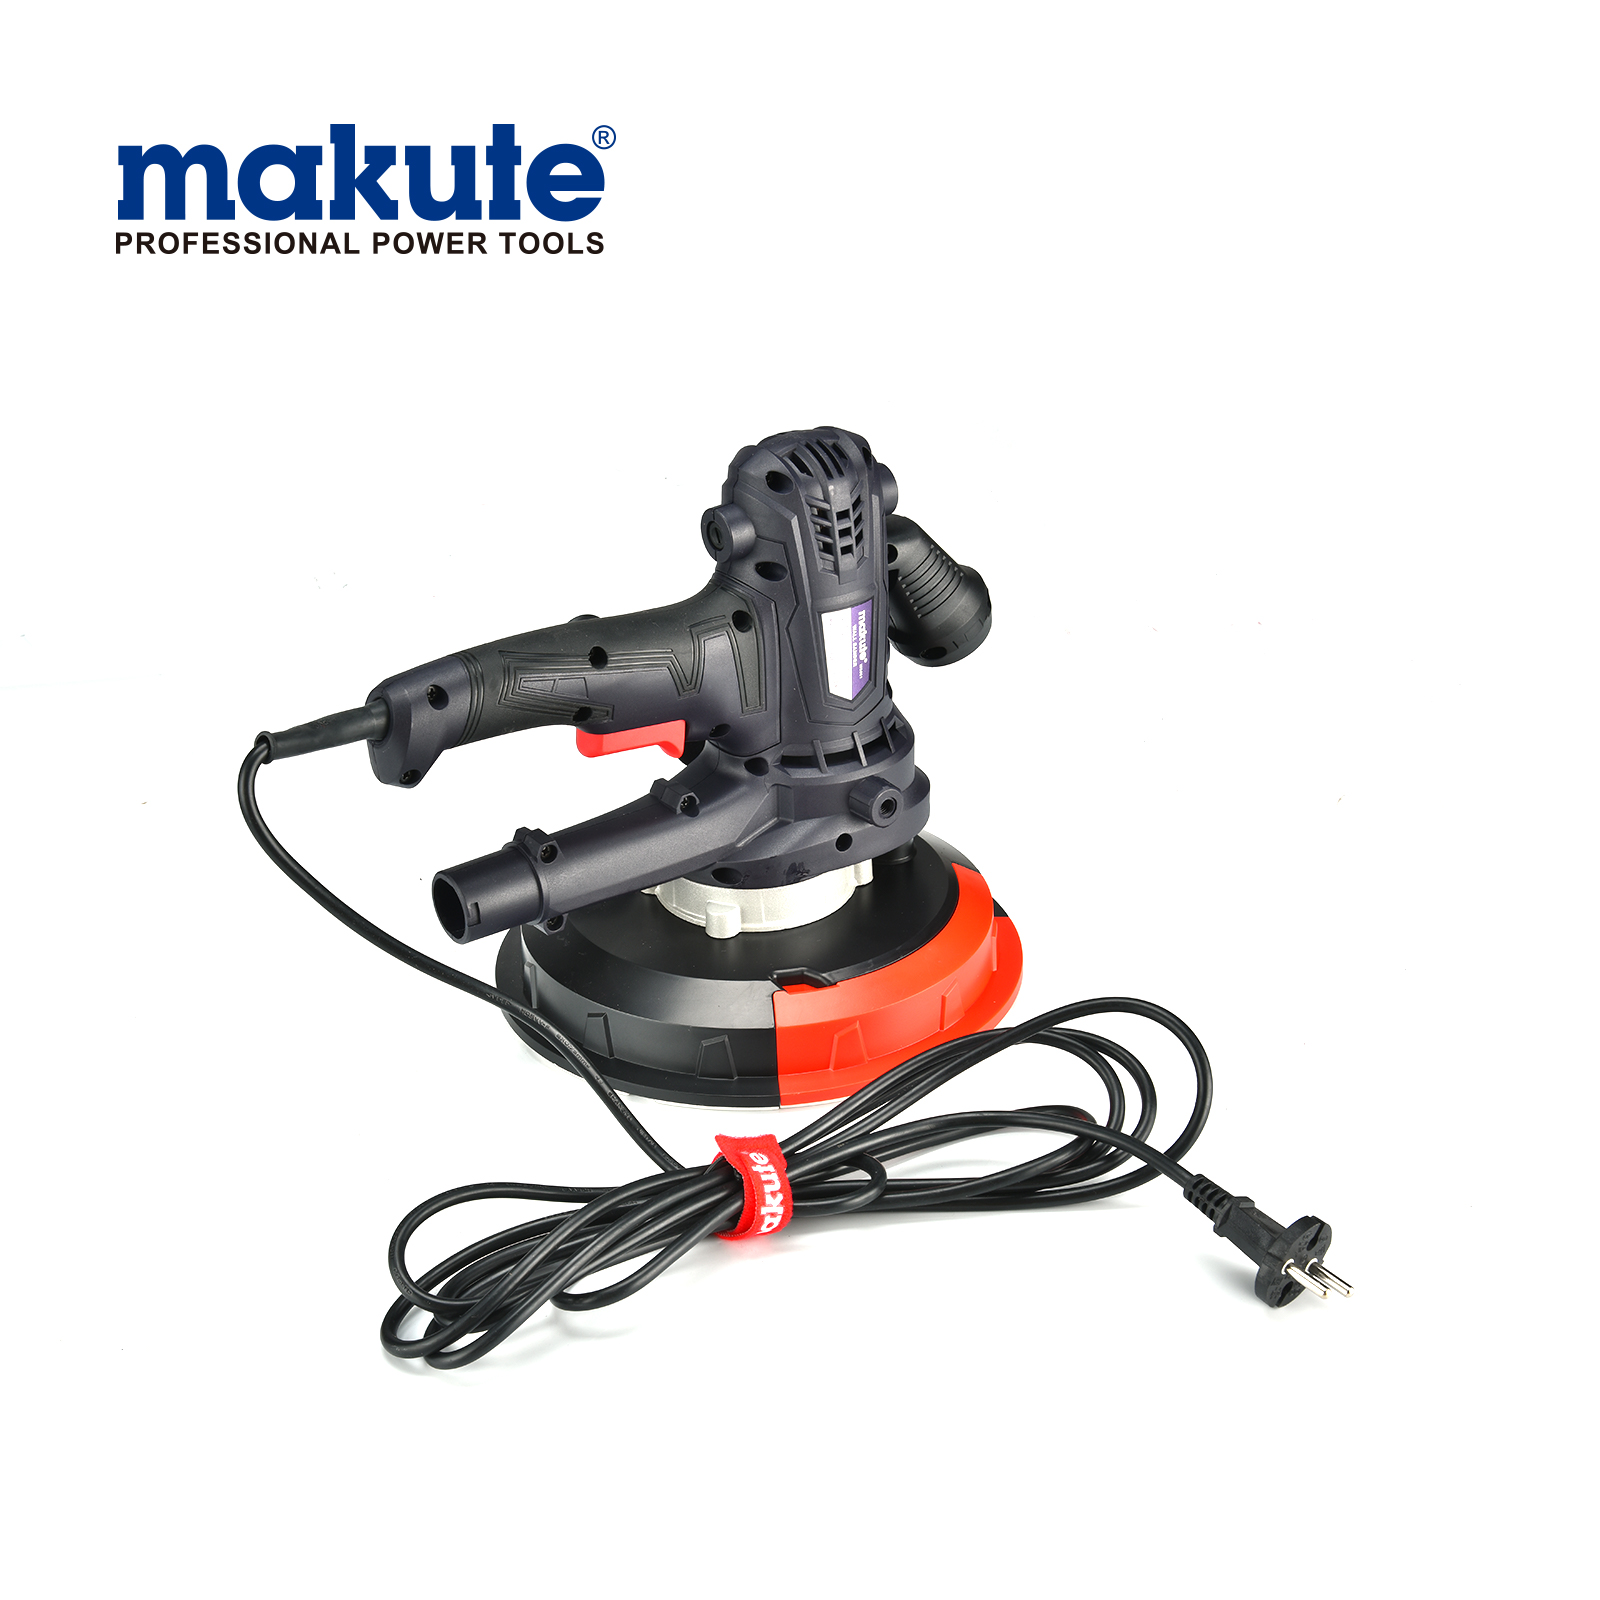 Makute 850w 180mm high quality WS001 wall sander